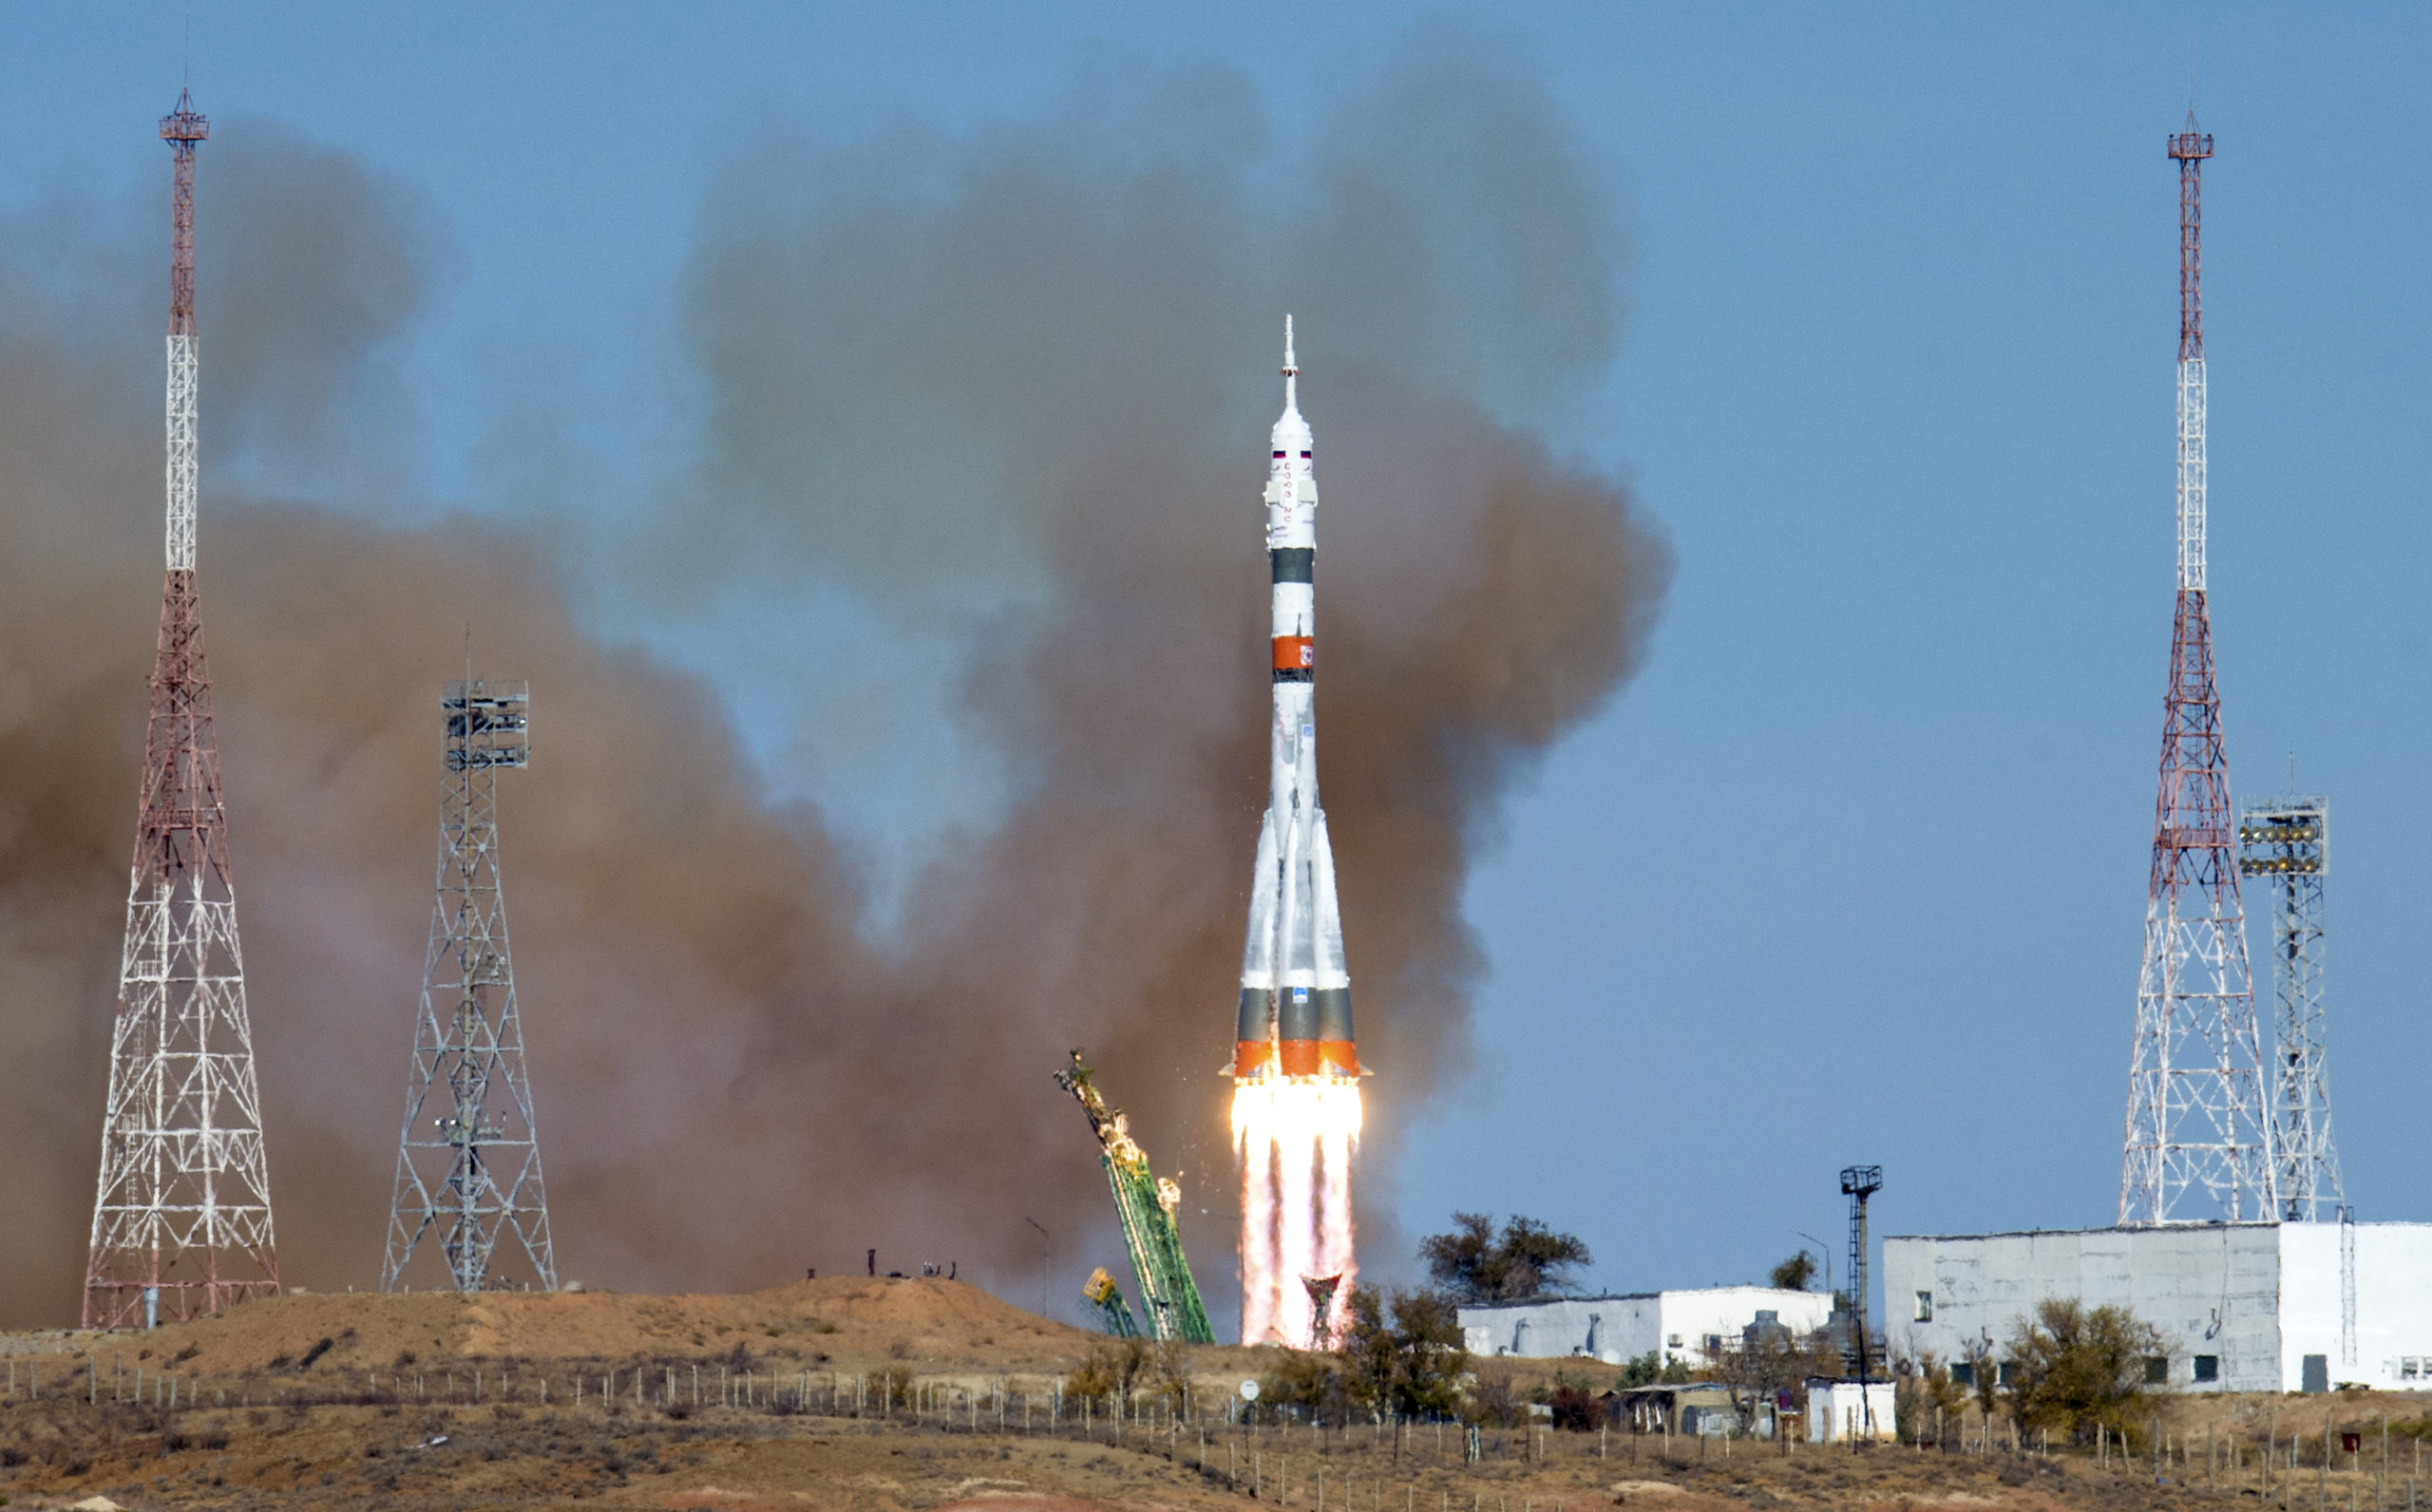 NASA Astronaut Kate Rubins Launches to Space Station with Russian Crewmates on Soyuz